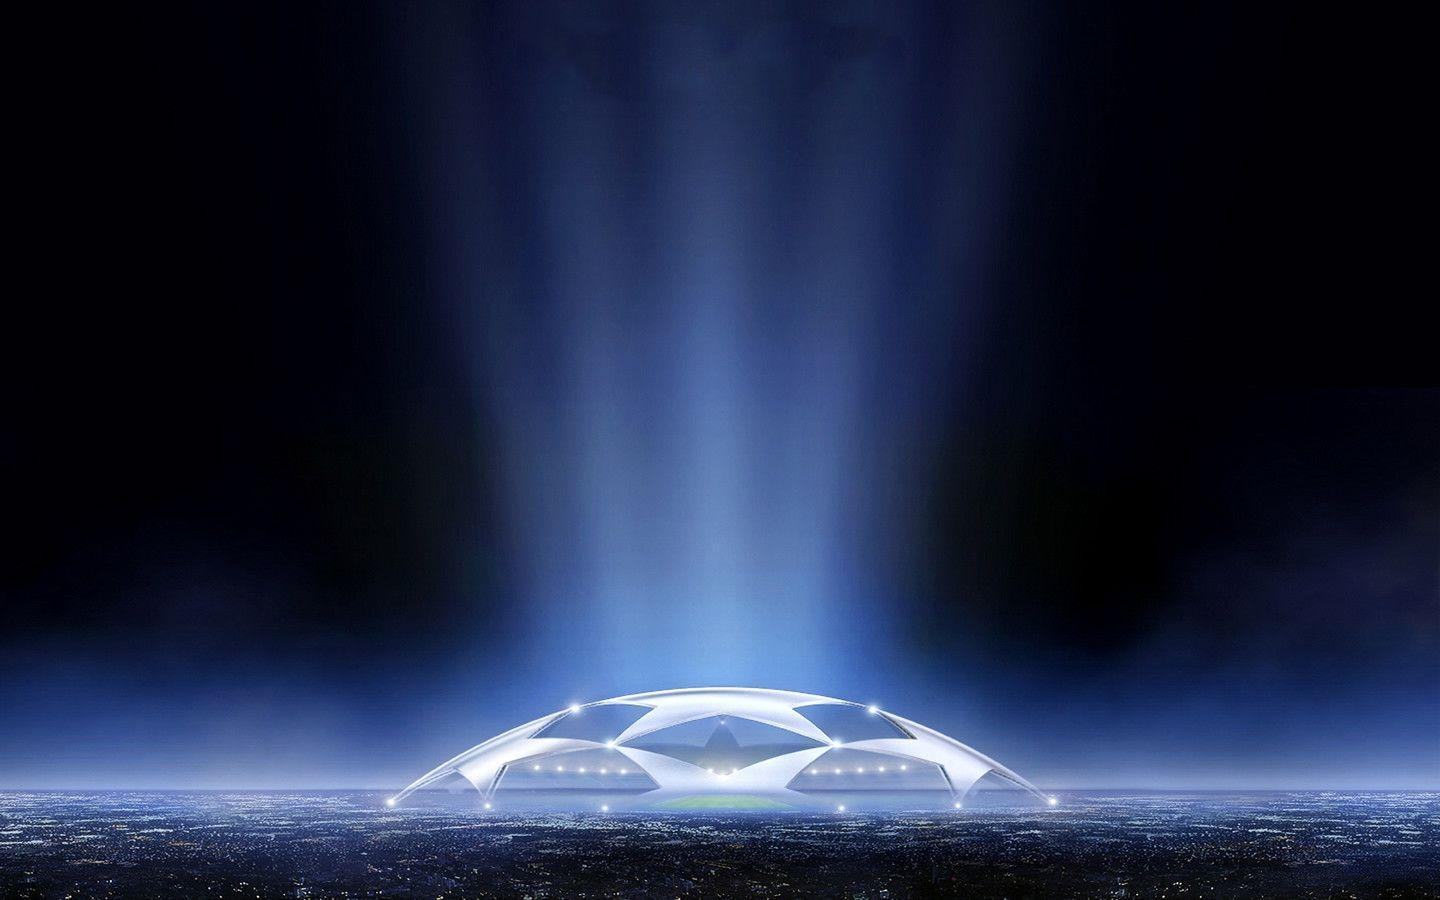 10 Best UEFA Champions League Wallpapers